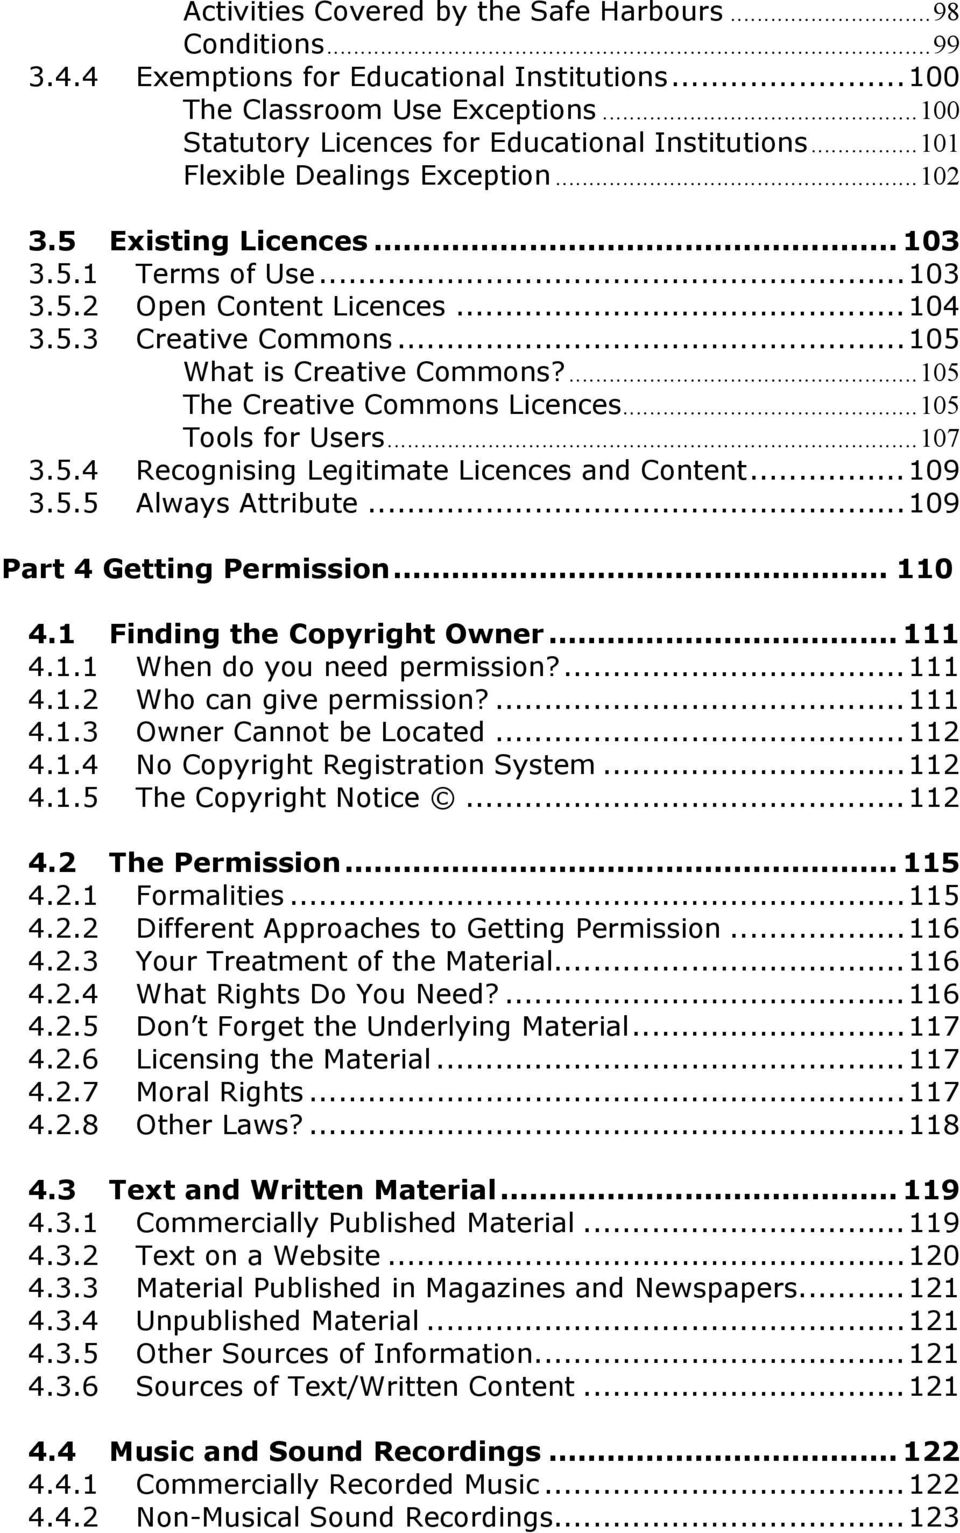 ...105 The Creative Commons Licences...105 Tools for Users...107 3.5.4 Recognising Legitimate Licences and Content...109 3.5.5 Always Attribute...109 Part 4 Getting Permission... 110 4.